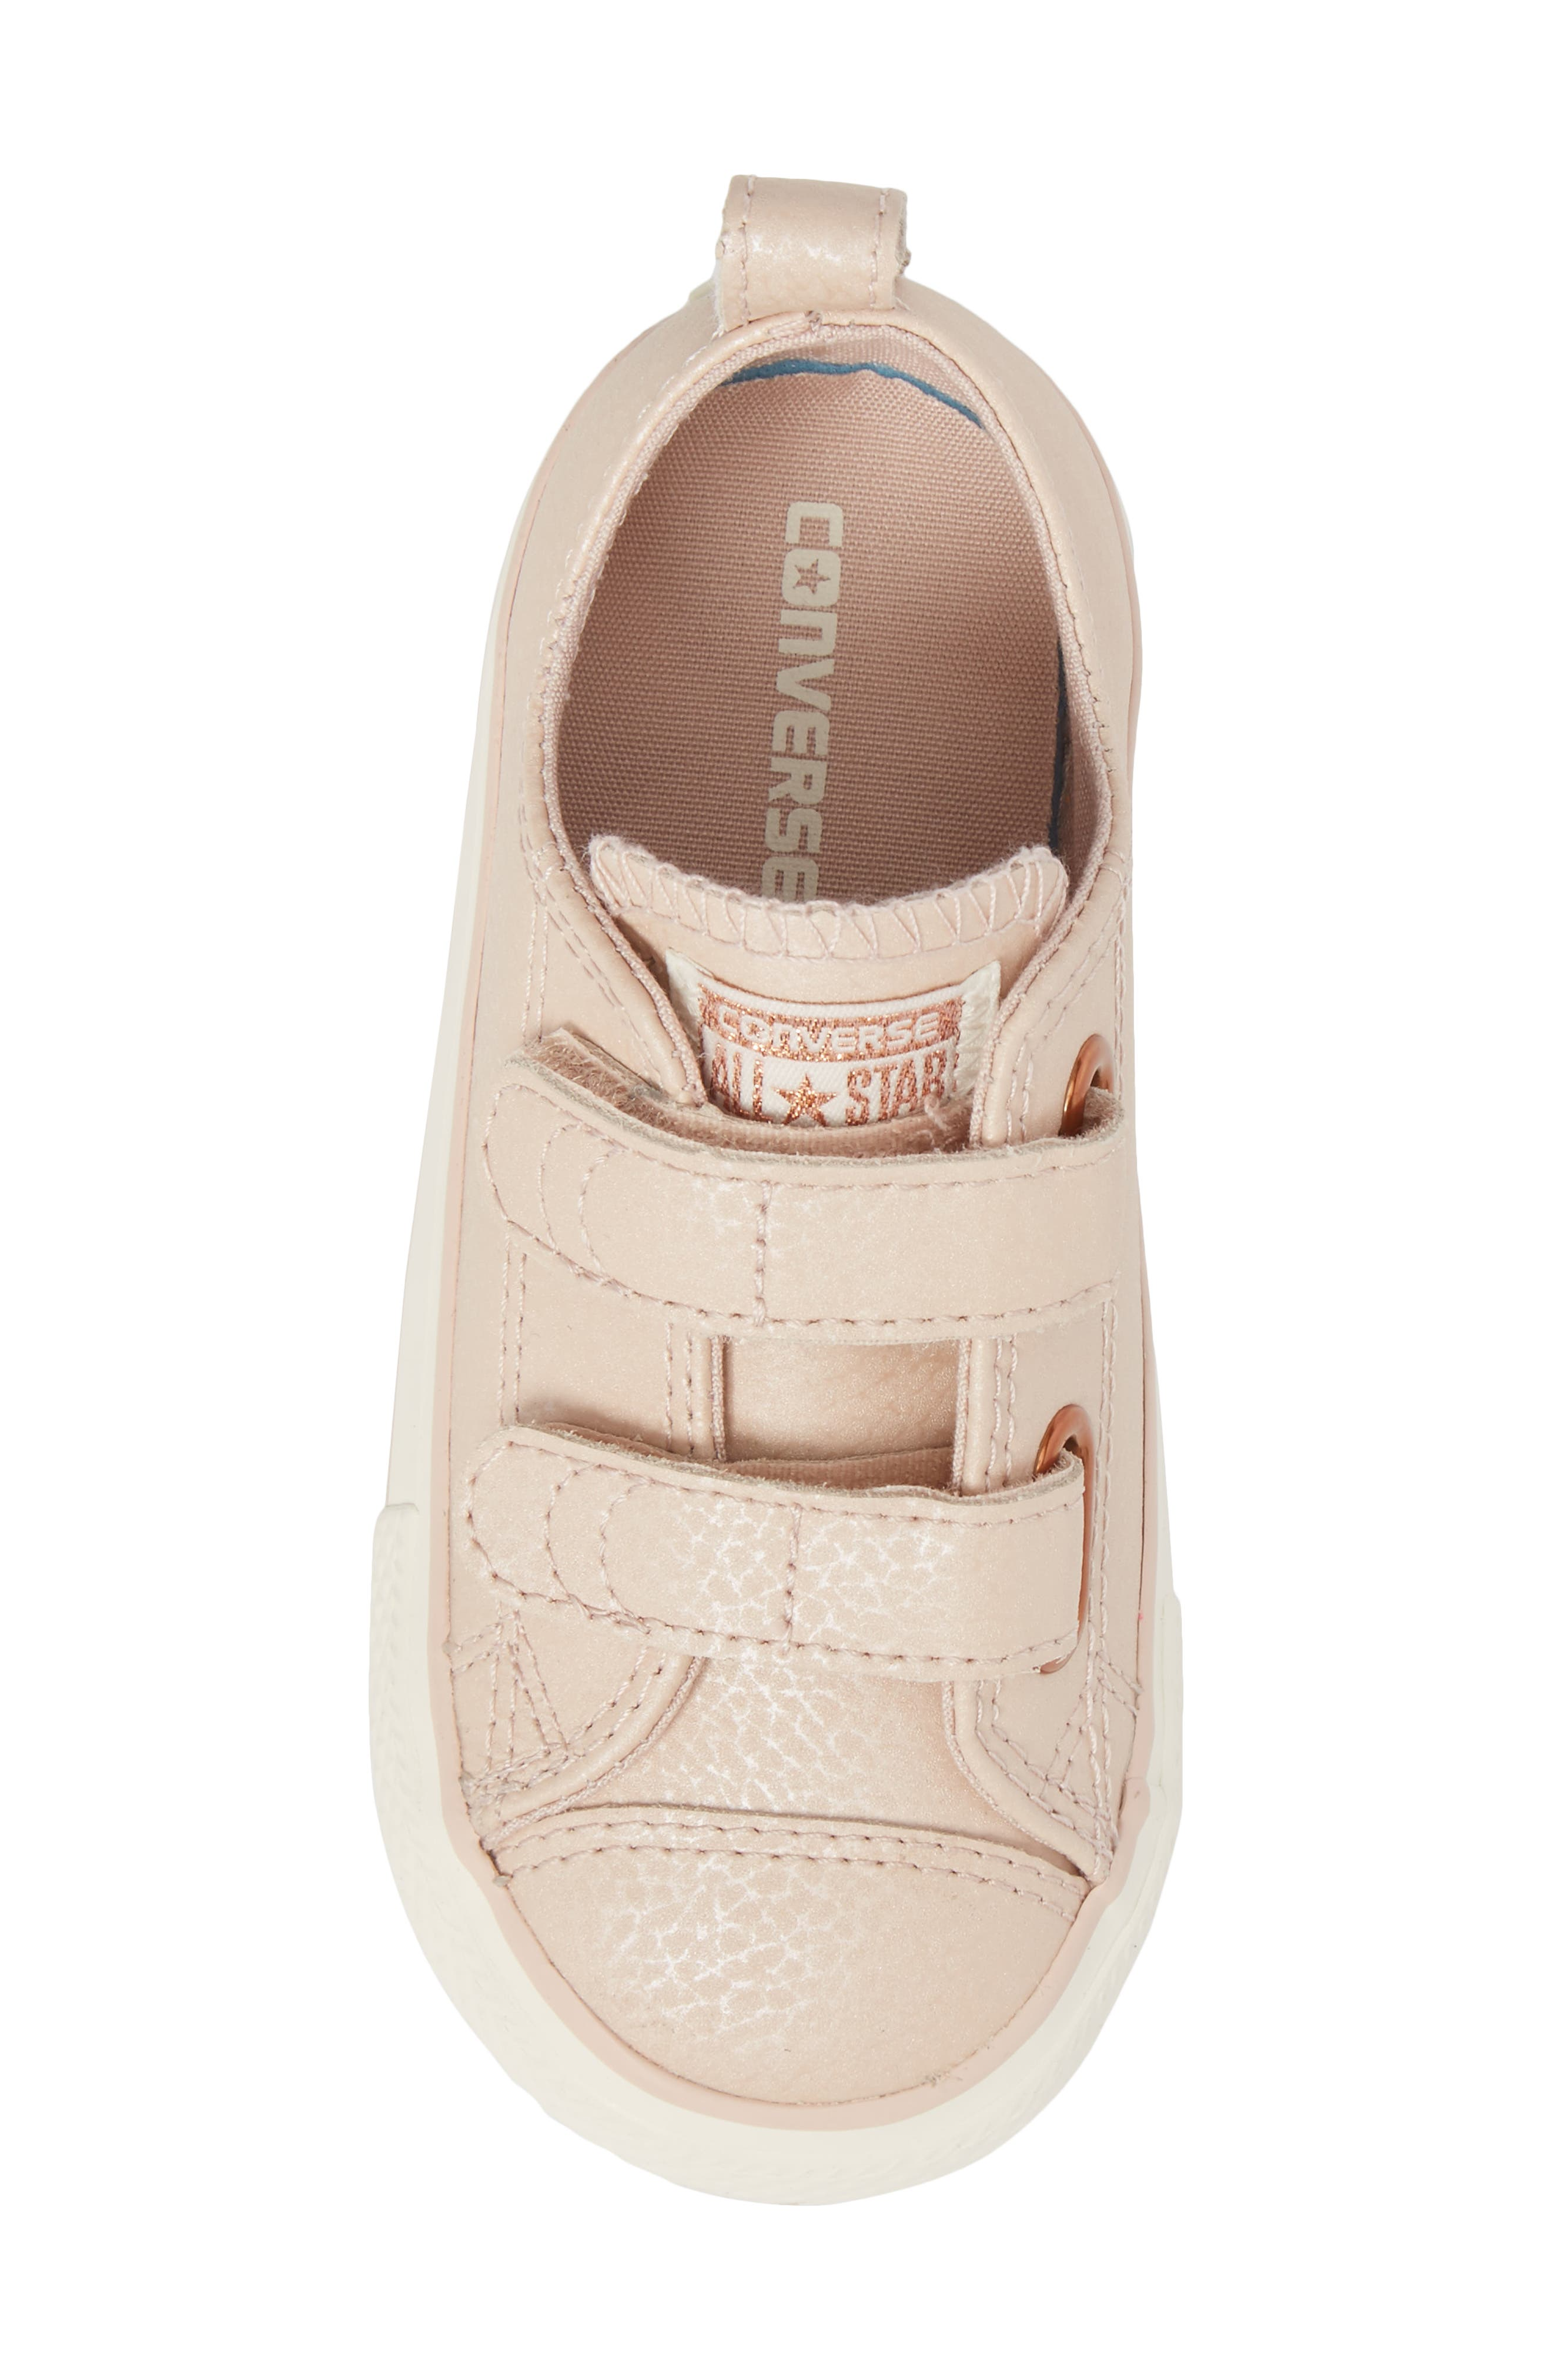 All Star<sup>®</sup> Fashion 2V Low Top Sneaker,                             Alternate thumbnail 5, color,                             Particle Beige